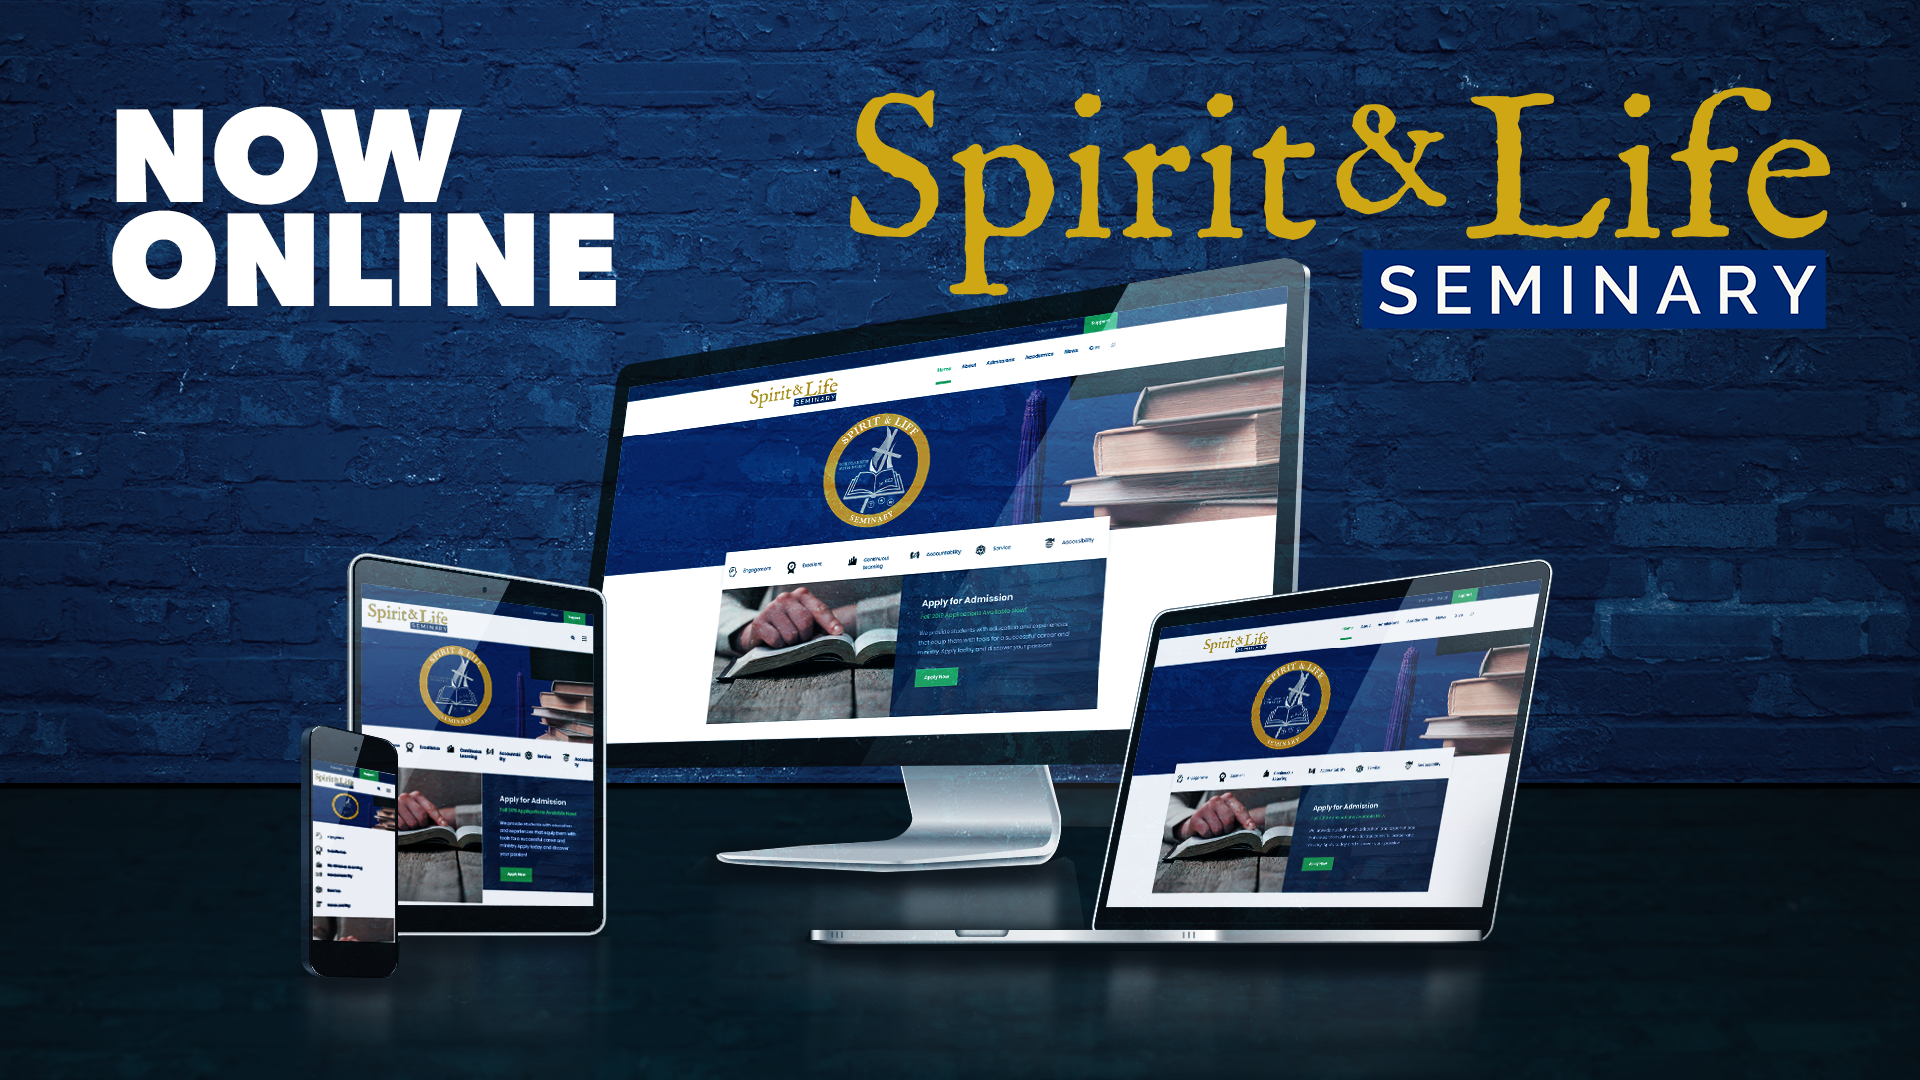 Spirit and Life Seminary Website Launched